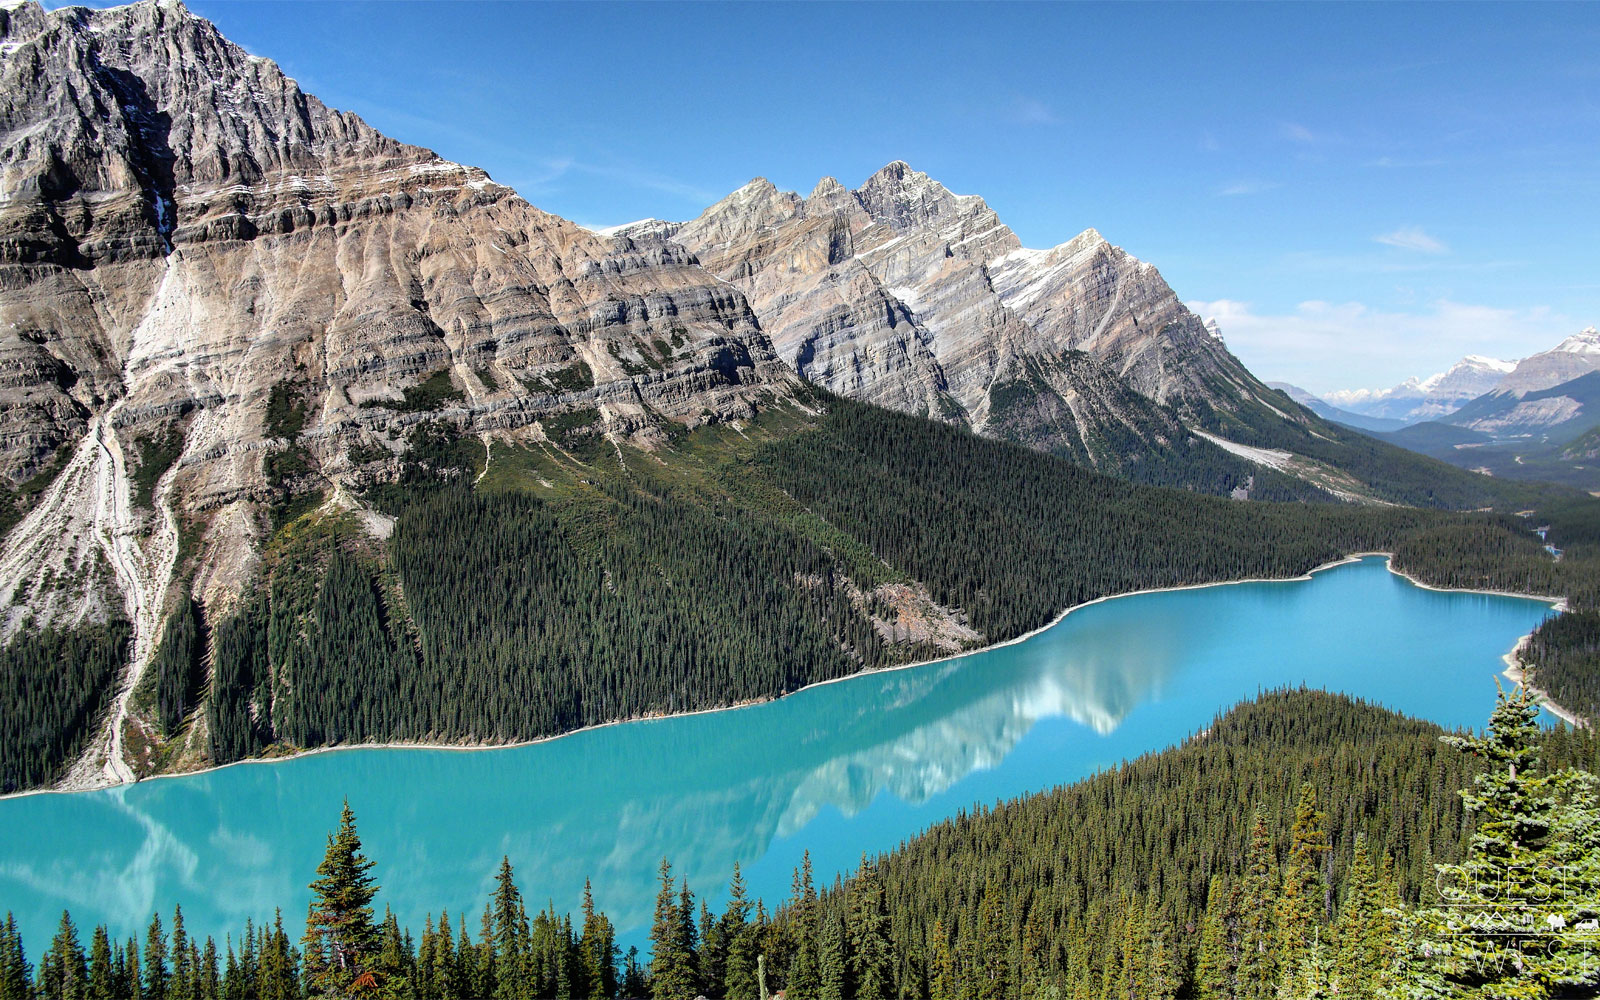 "Paquette said he was taken aback by the color of Peyto Lake in Banff National Park.                               ""It's the bluest lake you've ever seen because it's so high up,"" he said.                               ""The higher up you are looking down on it, the more blue it seems, and everything just looks so pure,  Paquette said.  Even though you're surrounded by all the tourists who come to see the park's beauty, everything around you here still looks like it's never been touched and that it's a rugged landscape humans don't belong in."